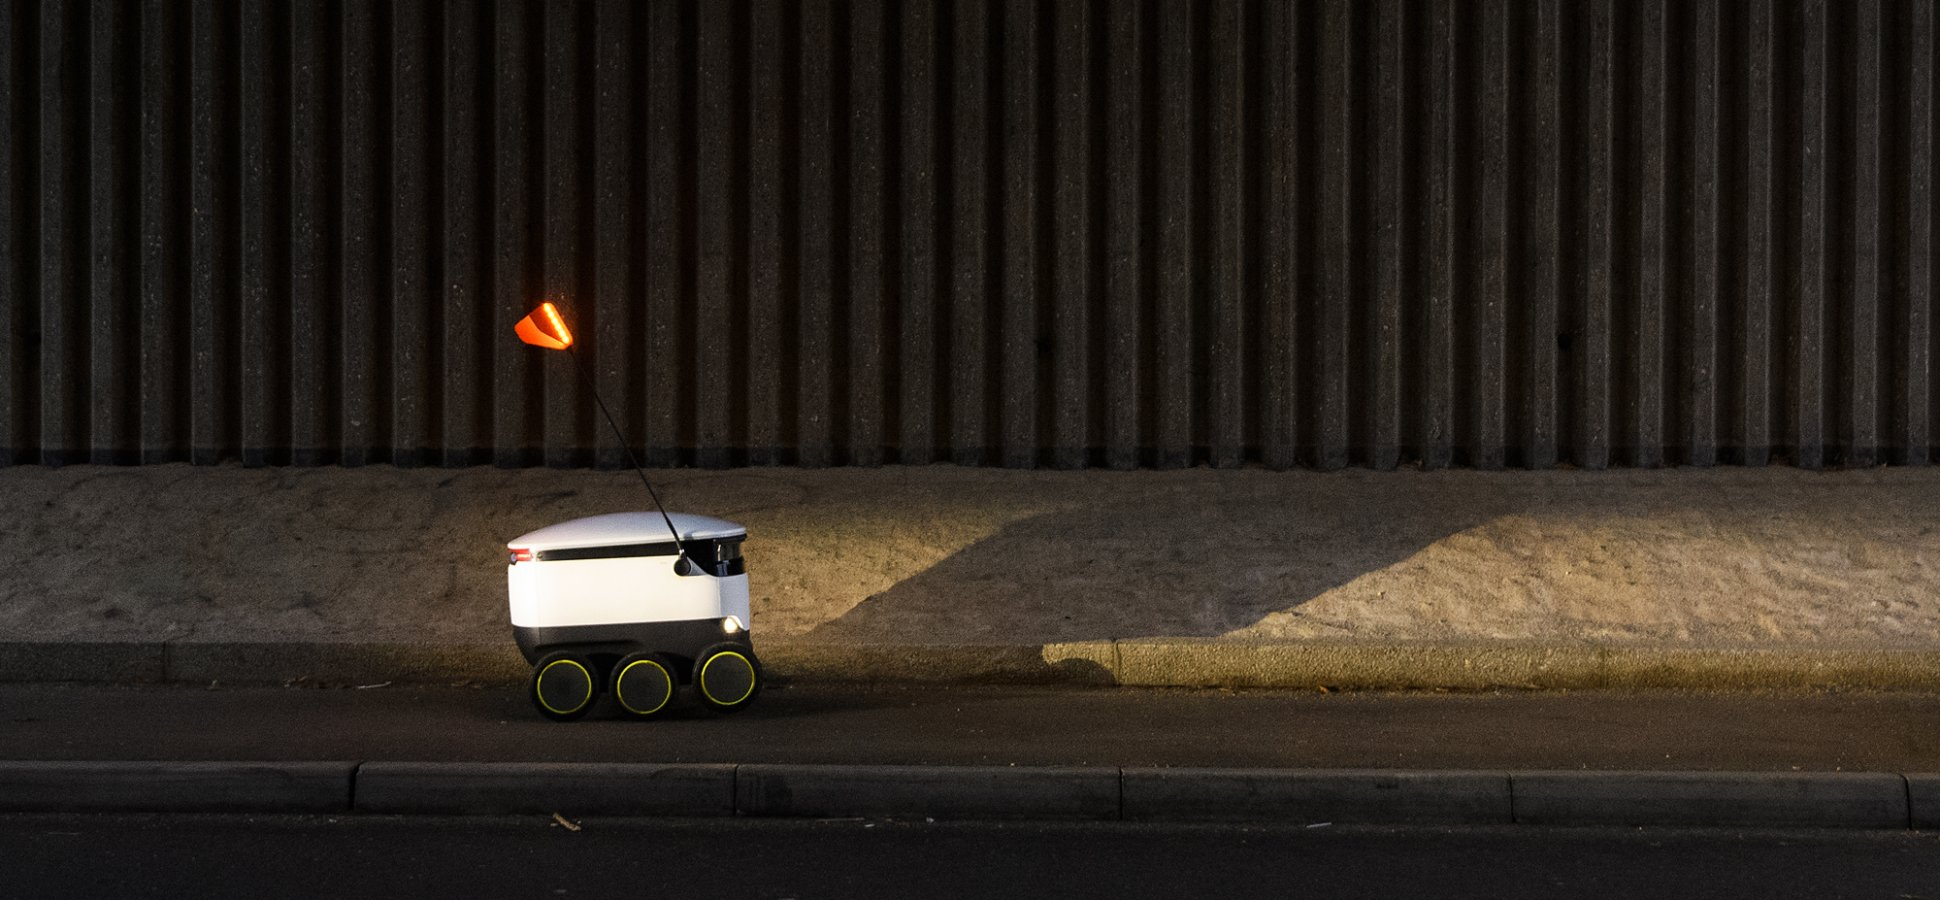 The Future of Customer Service Is Driving Down the Sidewalk (Slowly)